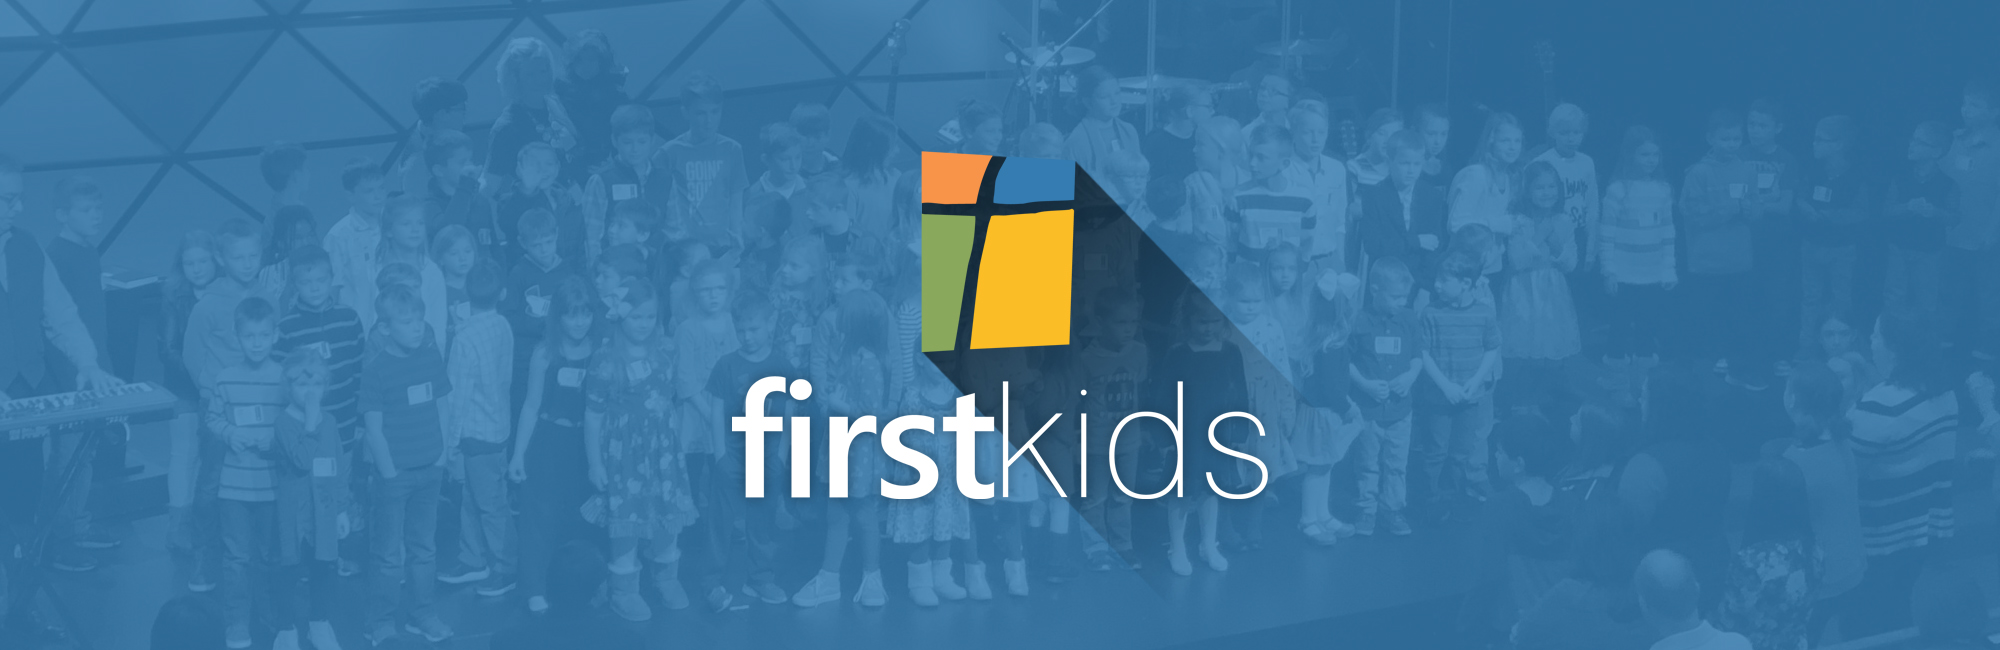 FirstKids - Web Header3